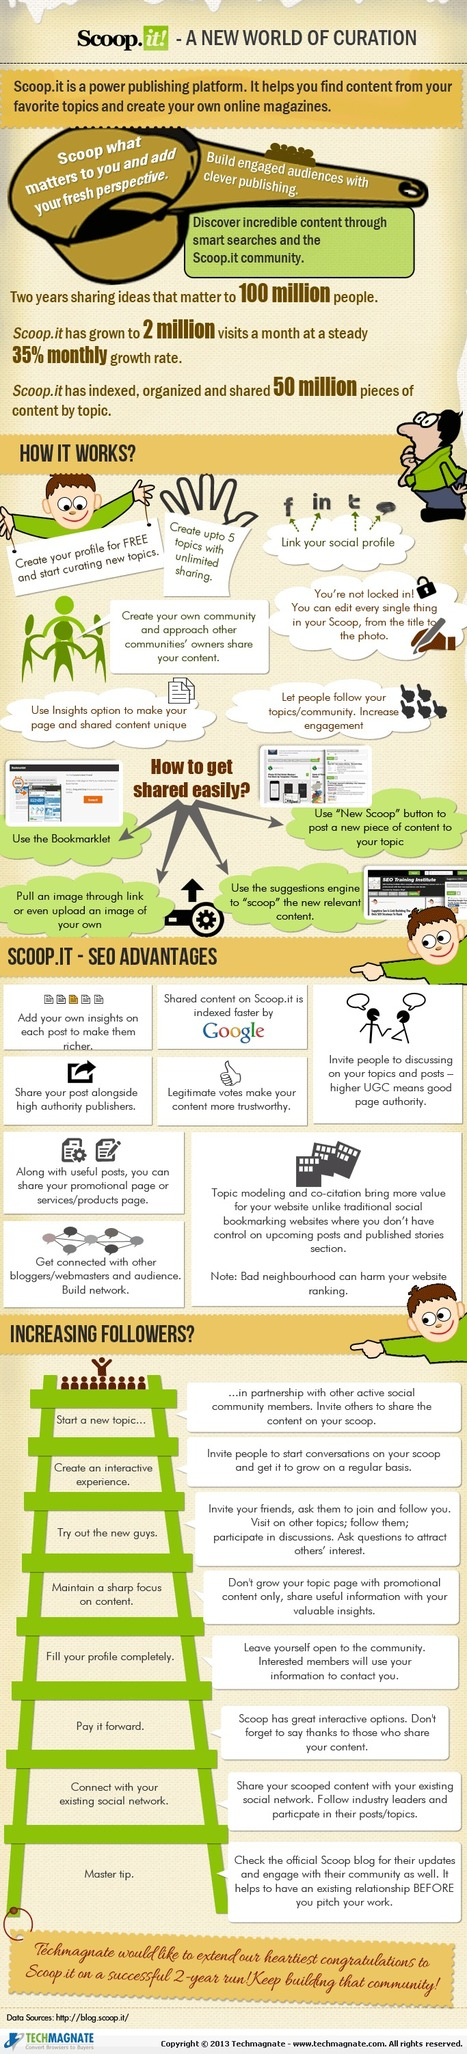 Scoop.It for SEO – A New World of Curation [Infographic]   Environnement, Gestion durable, Zéro déchet, RSE   Scoop.it